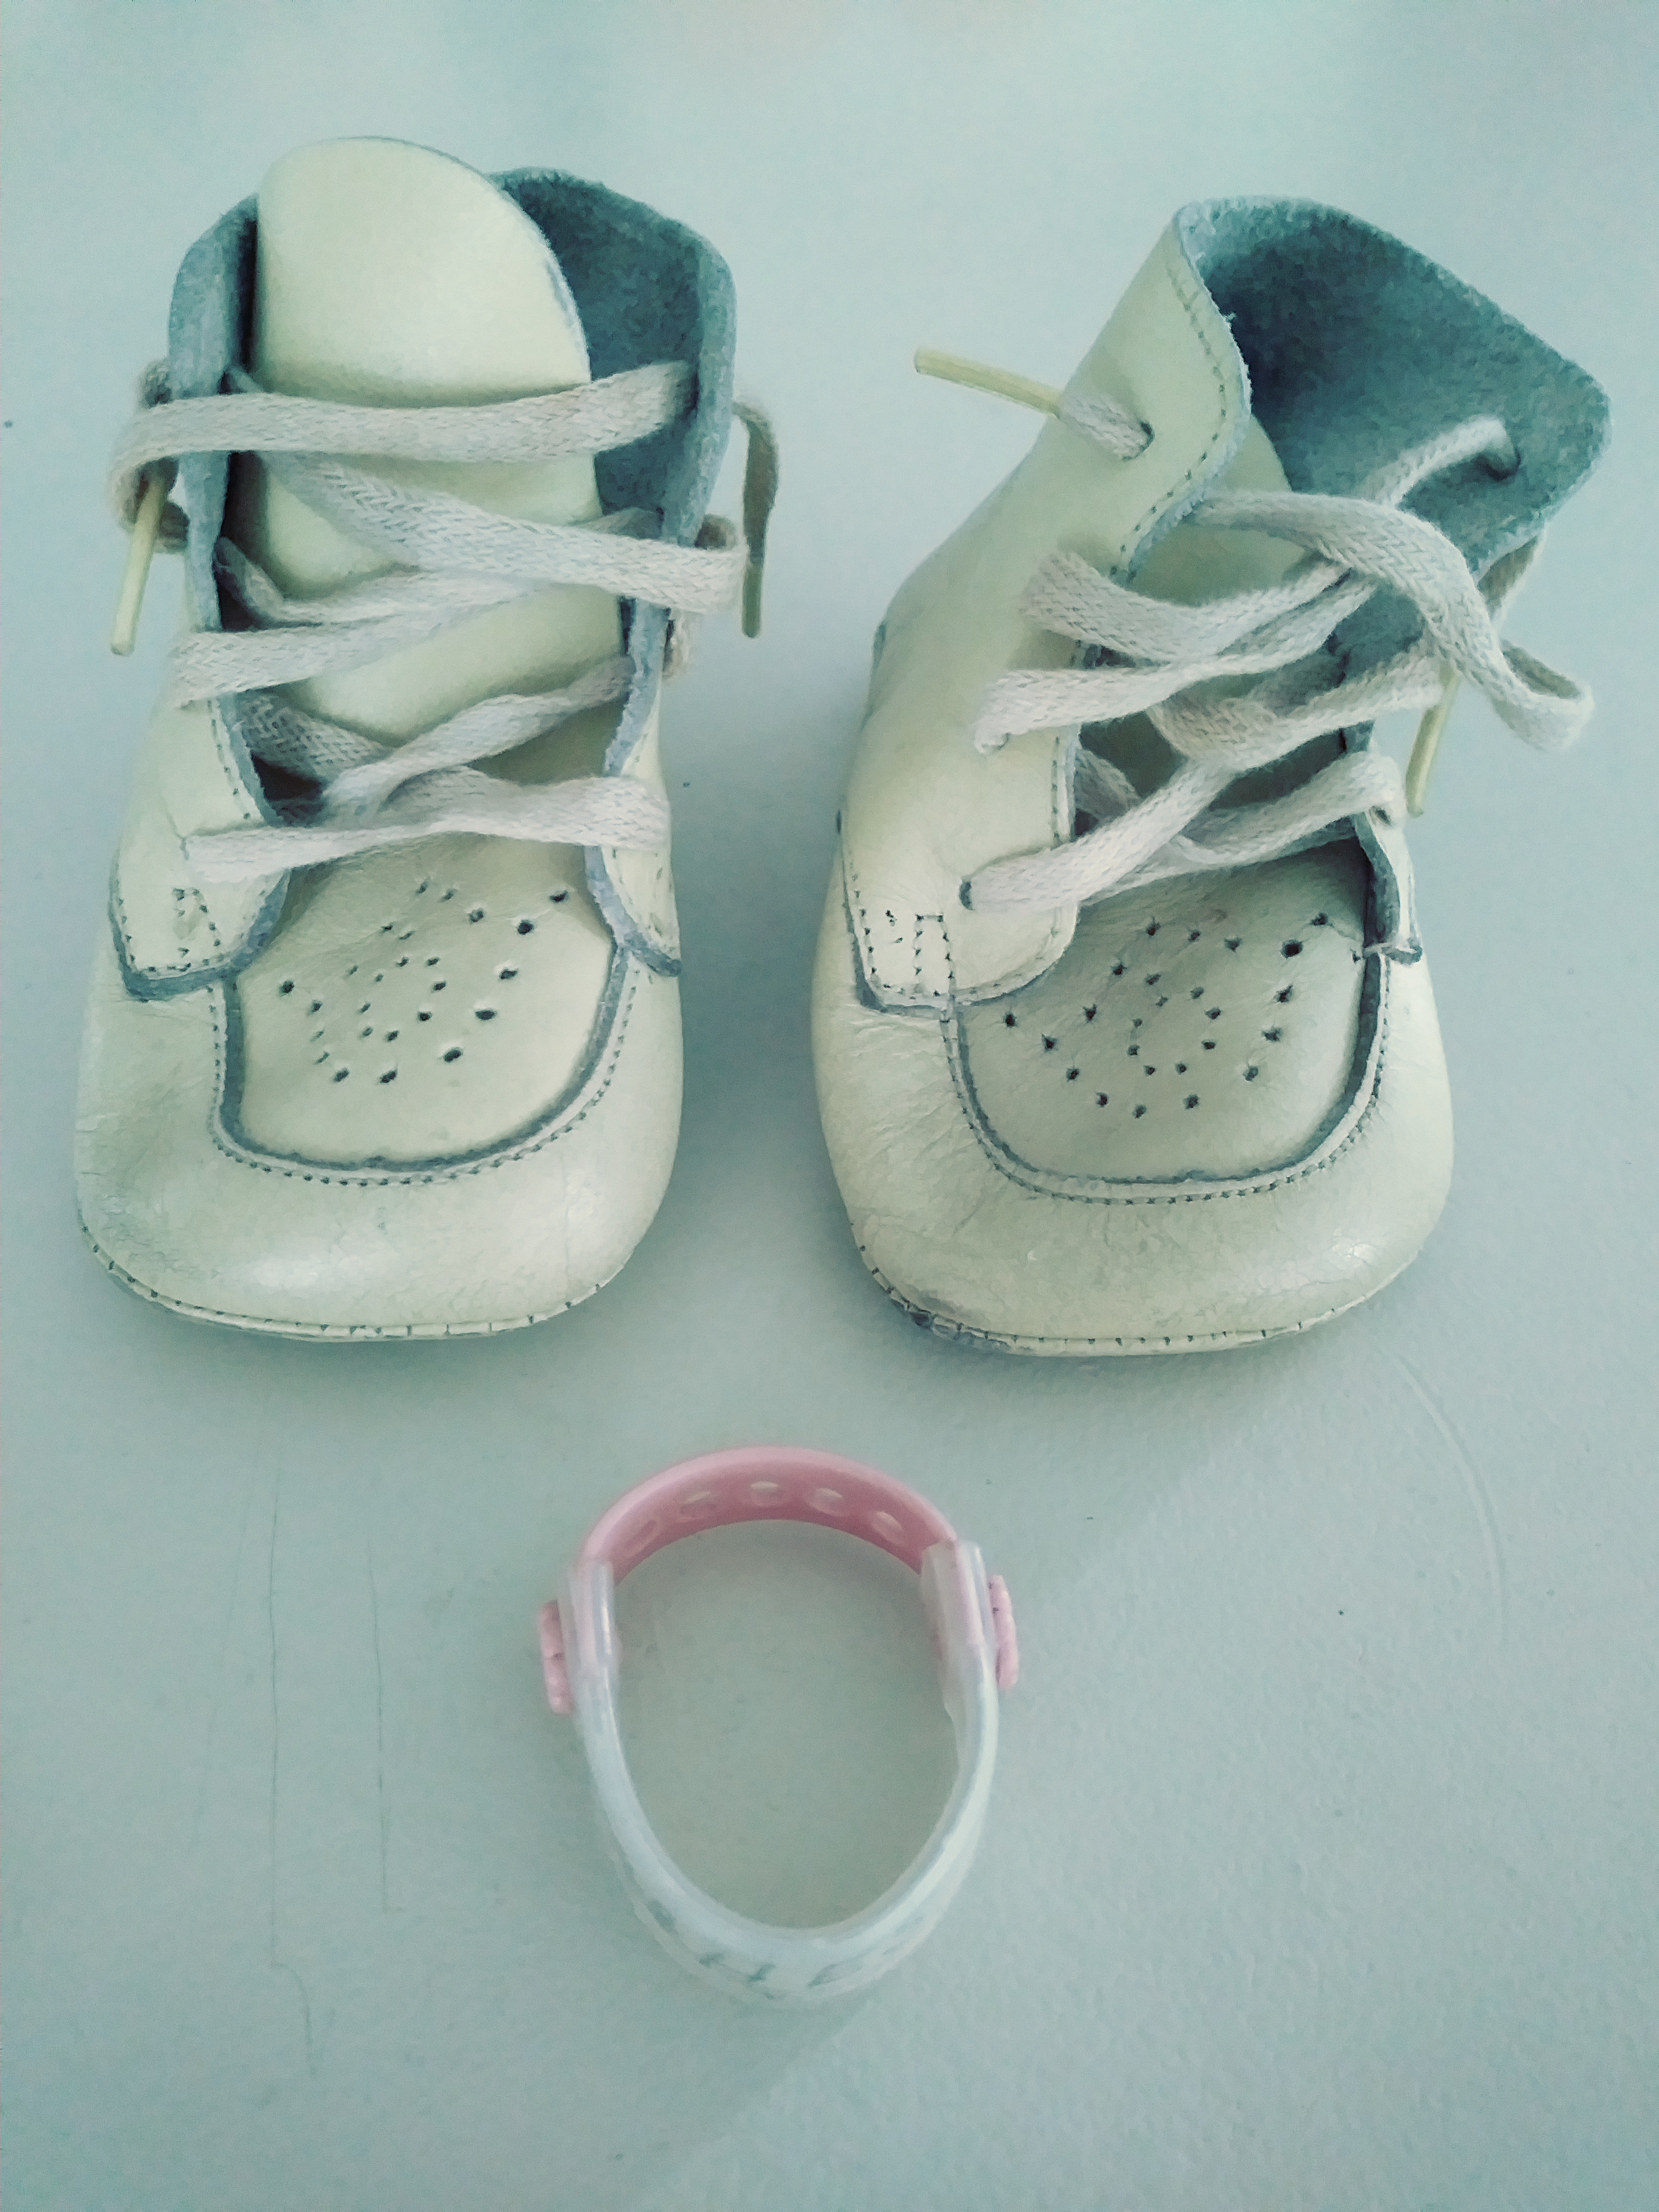 baby shoes & wrist band